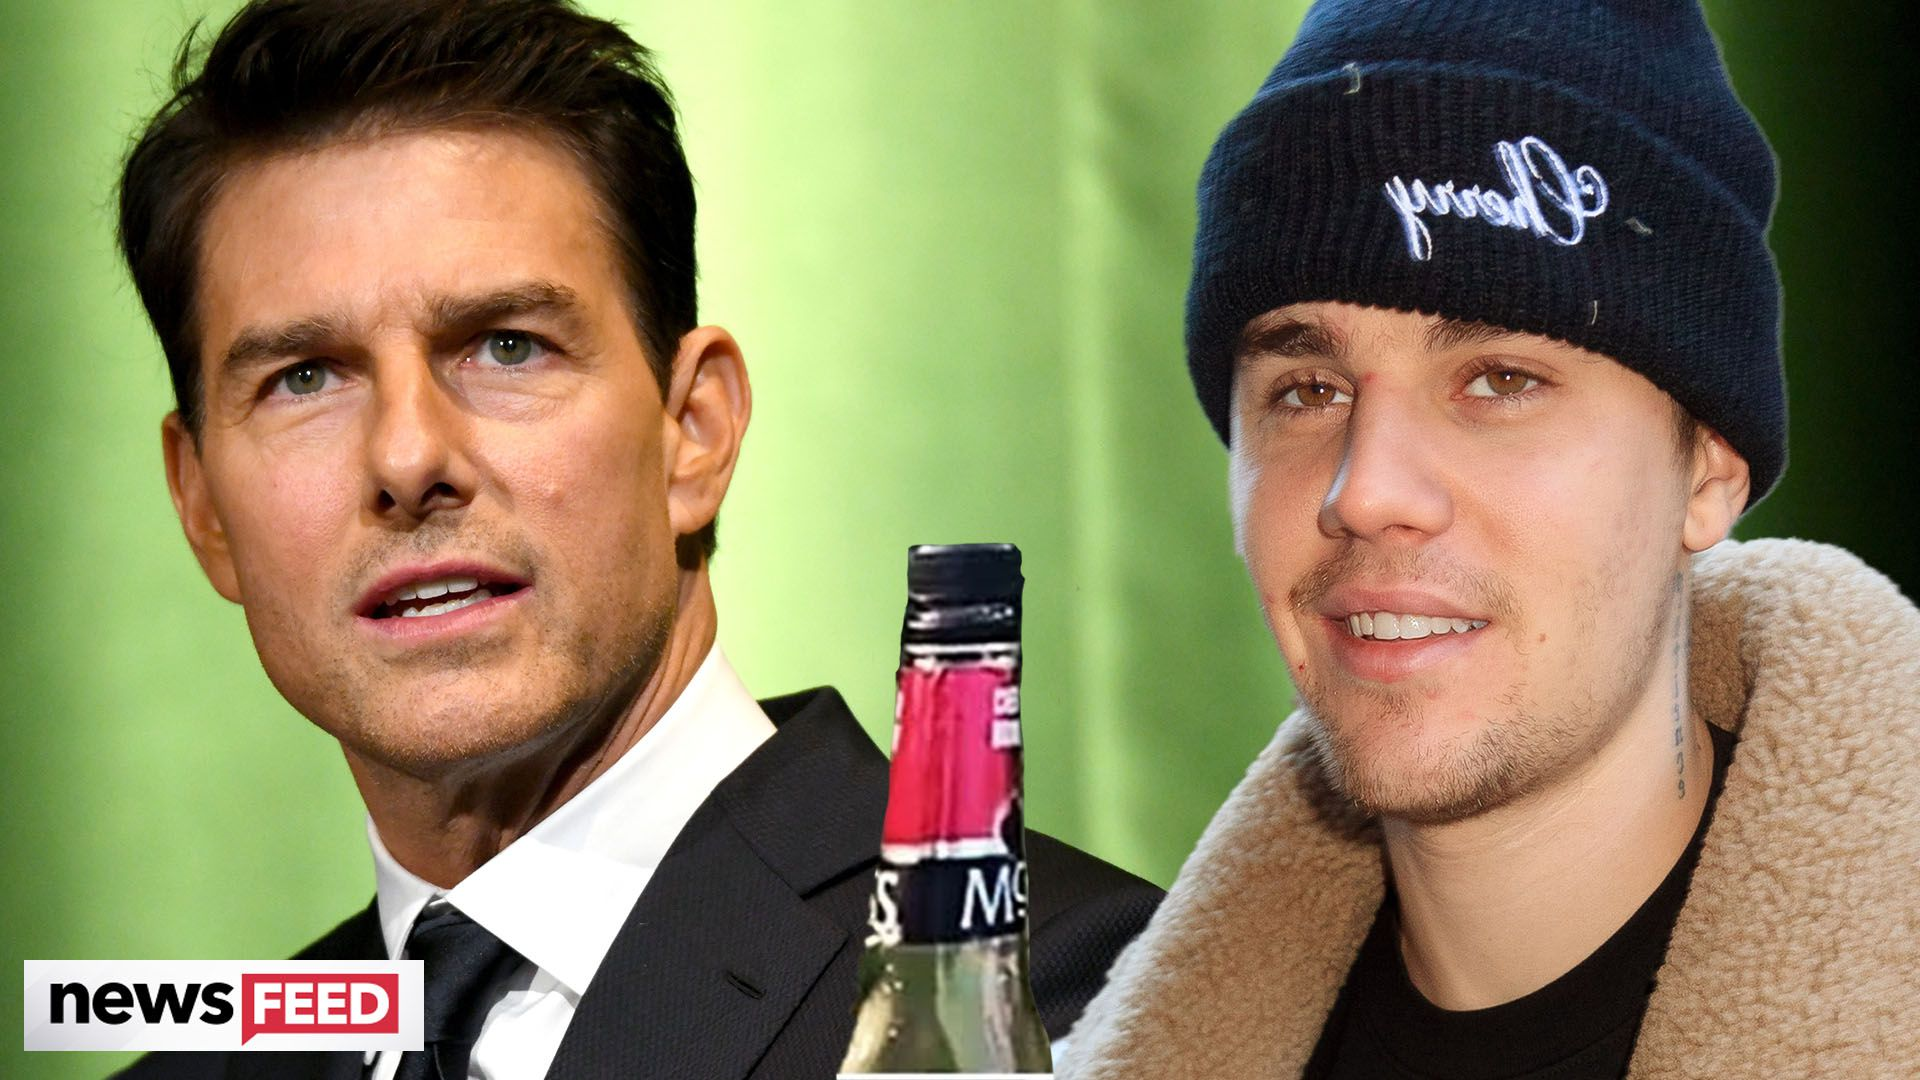 Why Is Justin Bieber Still 'Feuding' With Tom Cruise? An Investigation